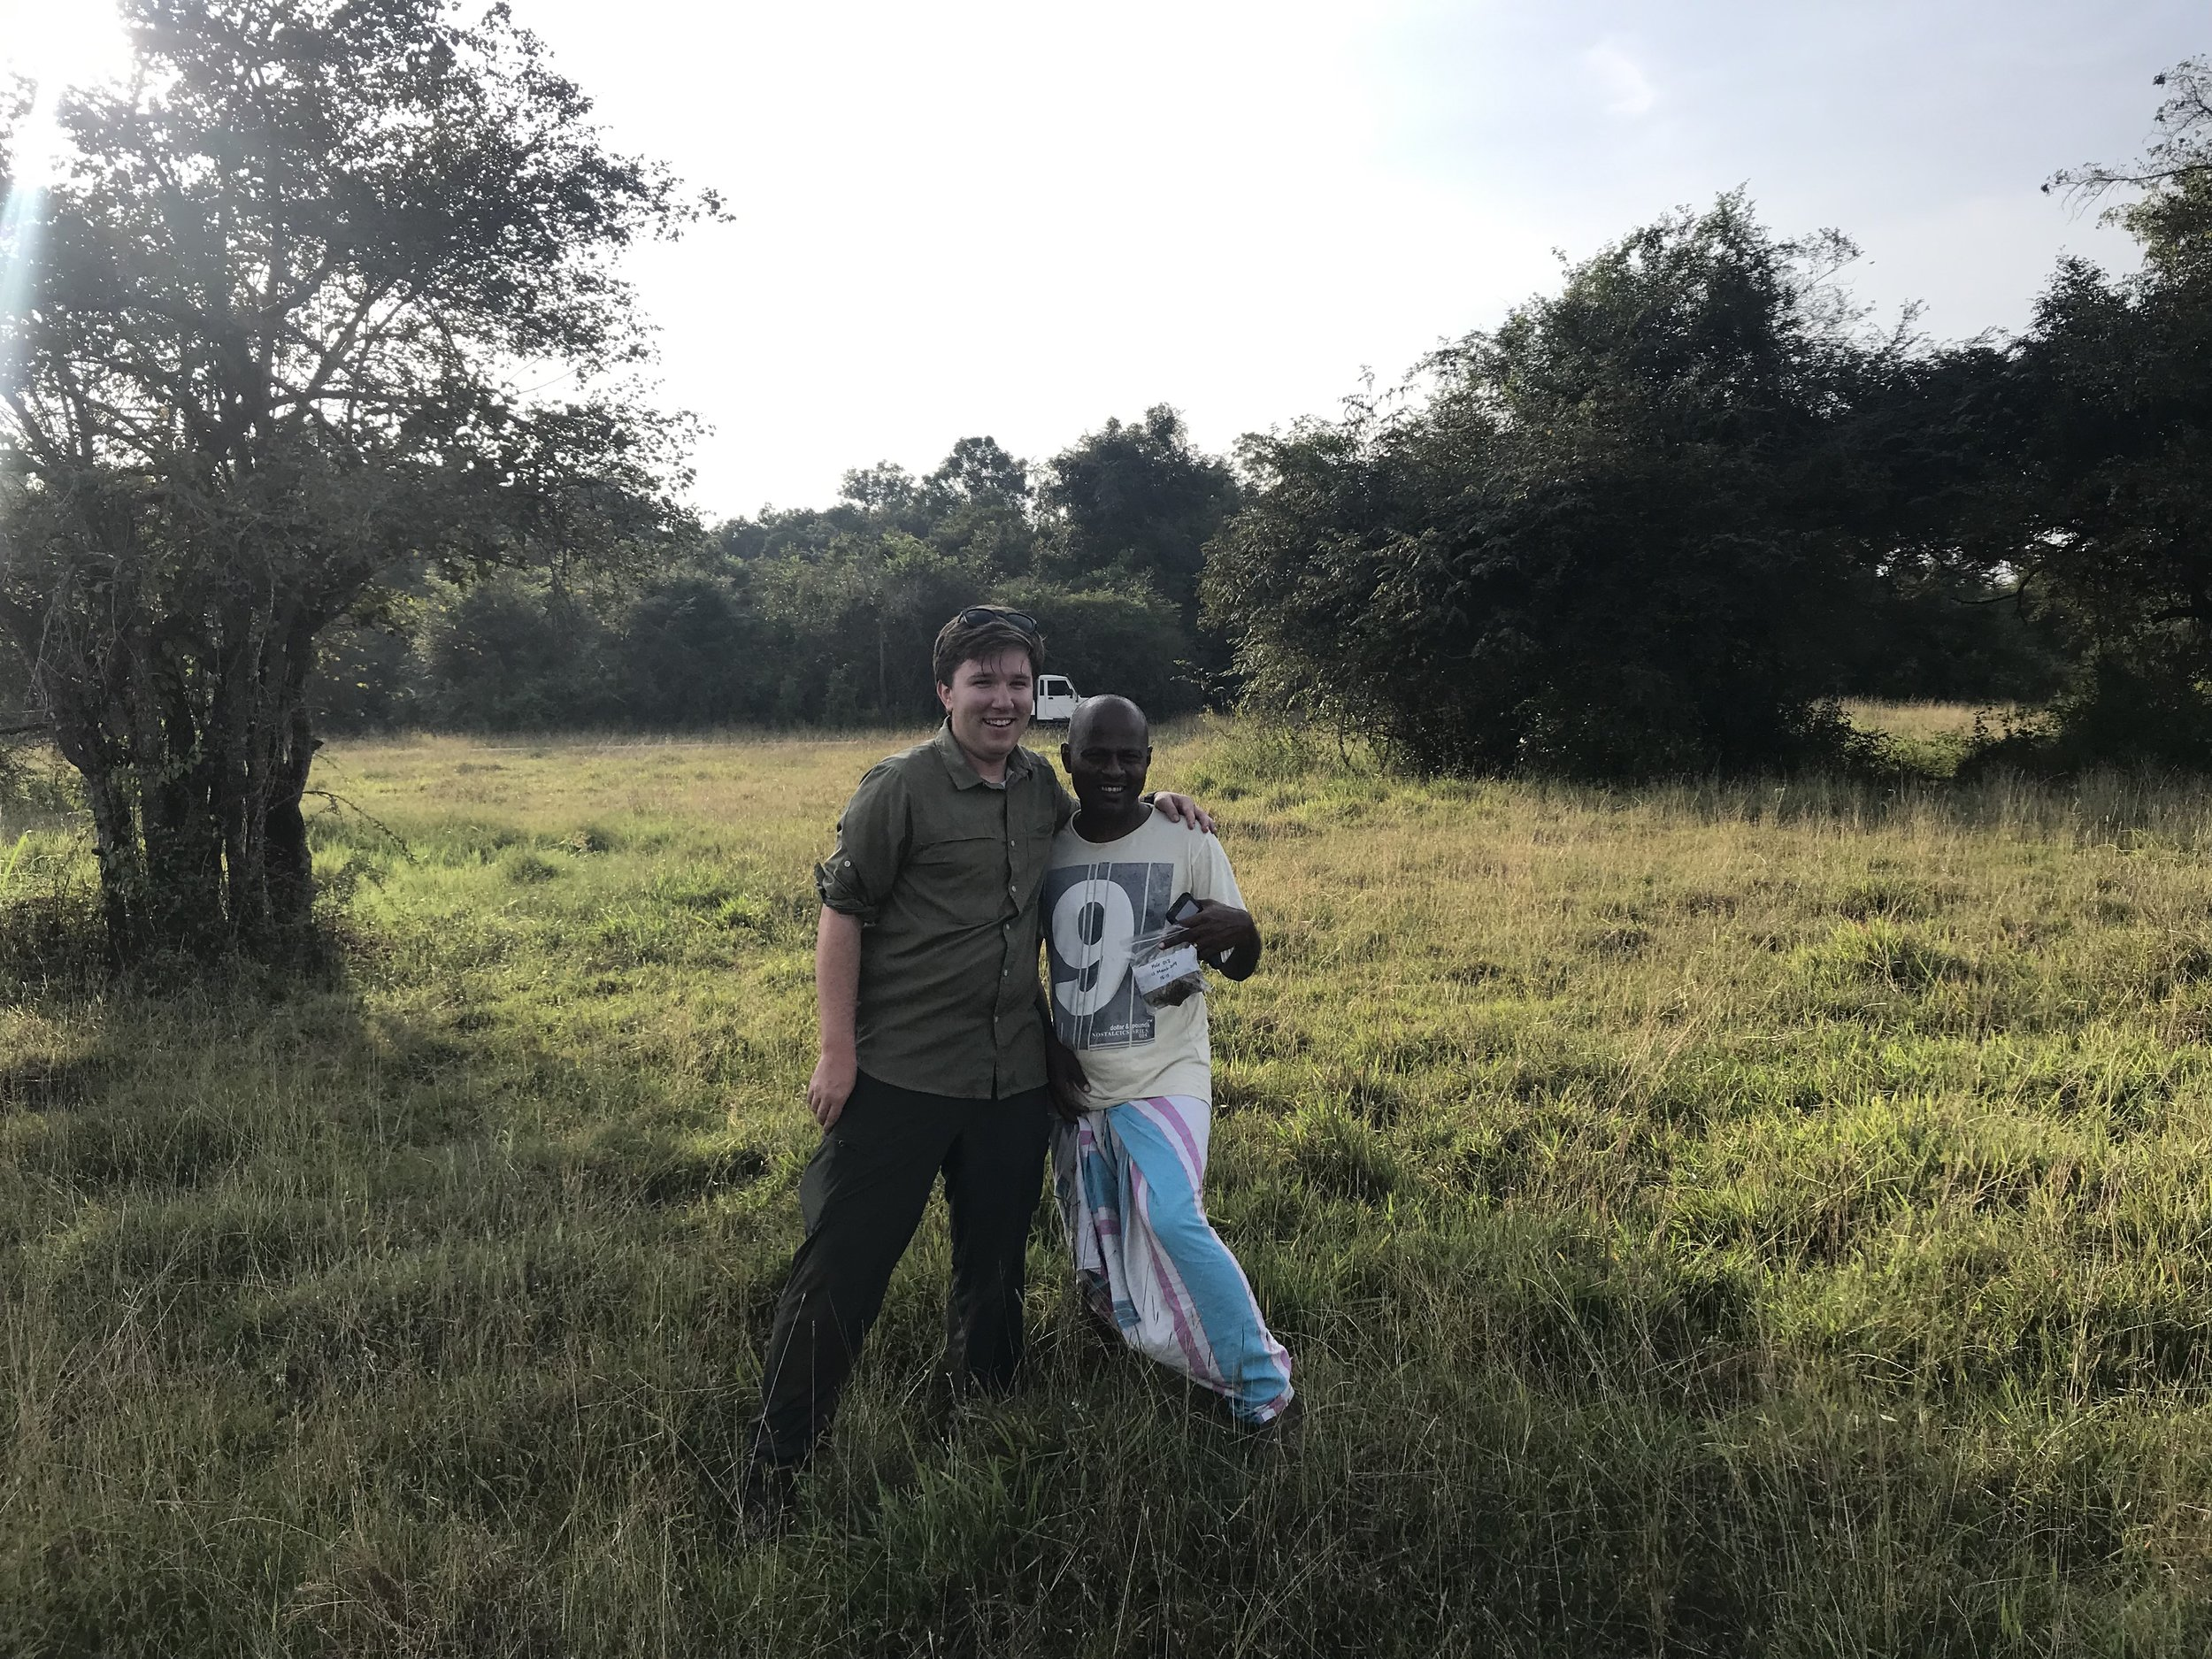 Nimal and I after our trek through the elephant-print minefield. Not pictured: my butt covered in mud from my fall.